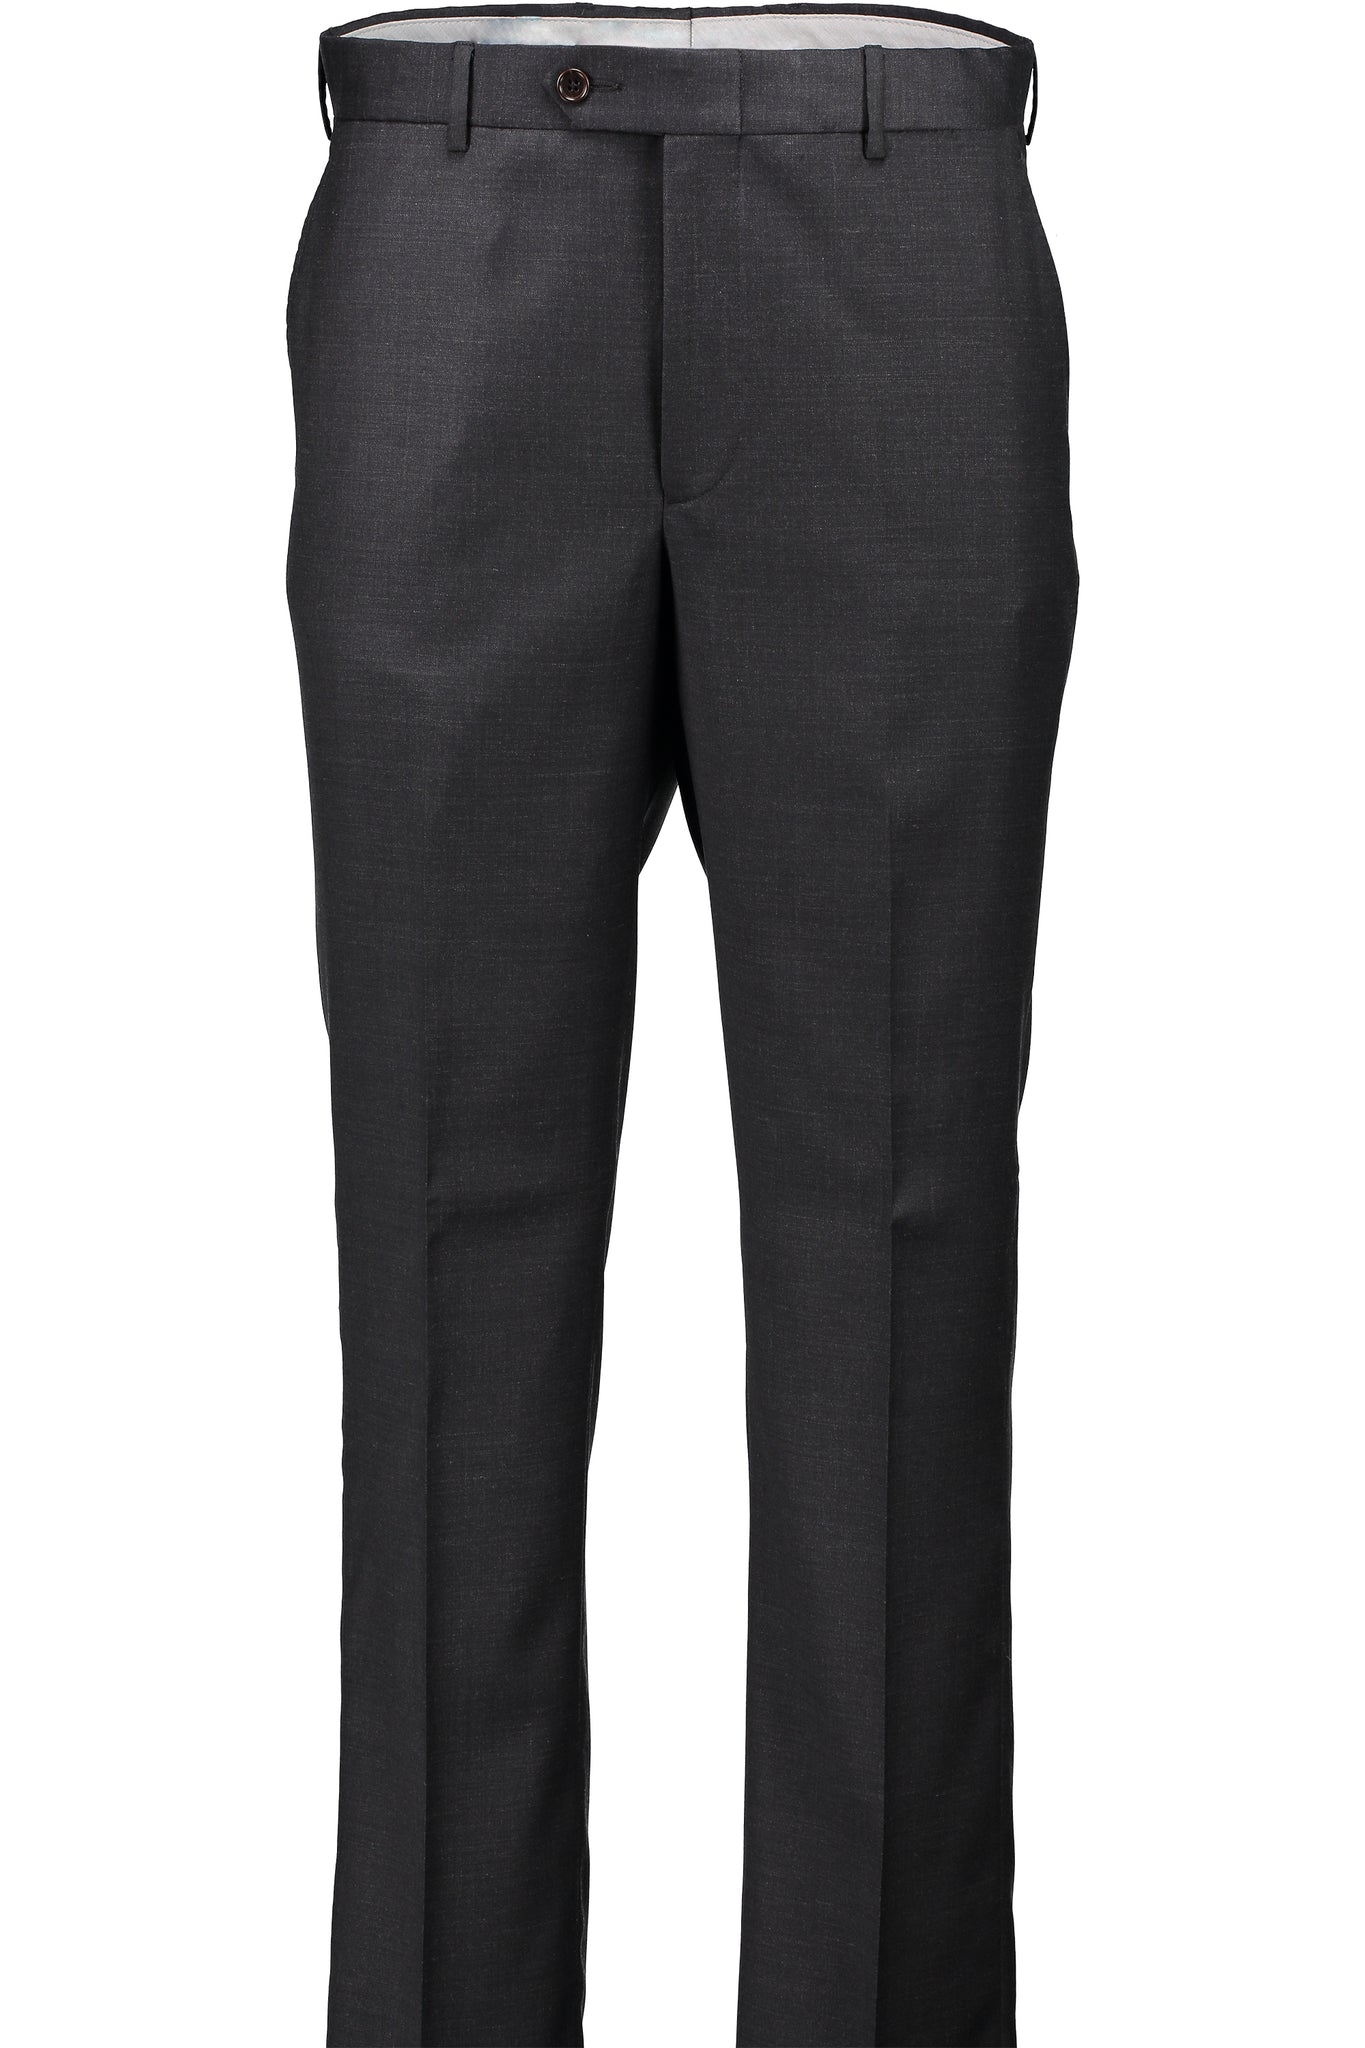 Classic Fit Charcoal Wool Traveler Suit Separate Flat Front Pant -  Hardwick.com